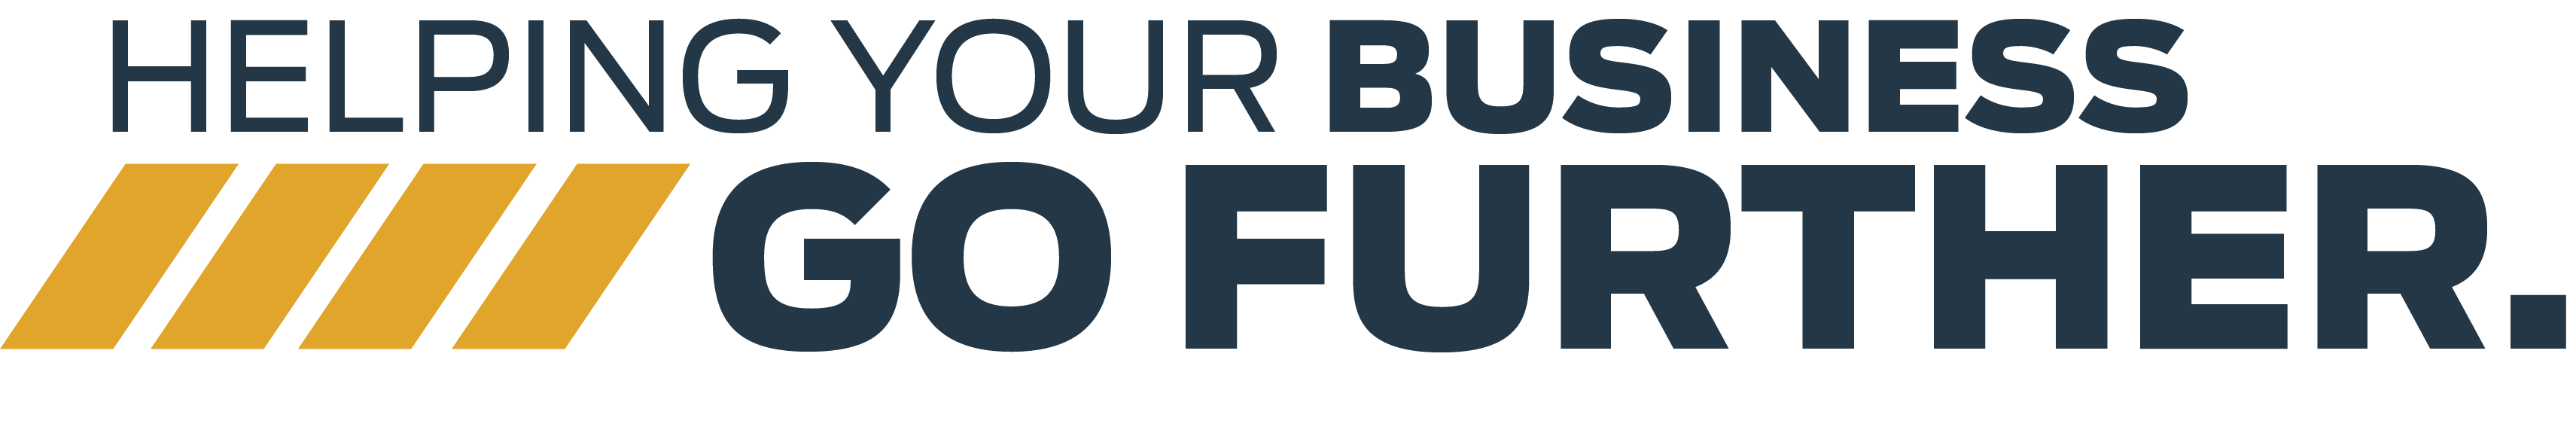 Helping Your Business Go Further